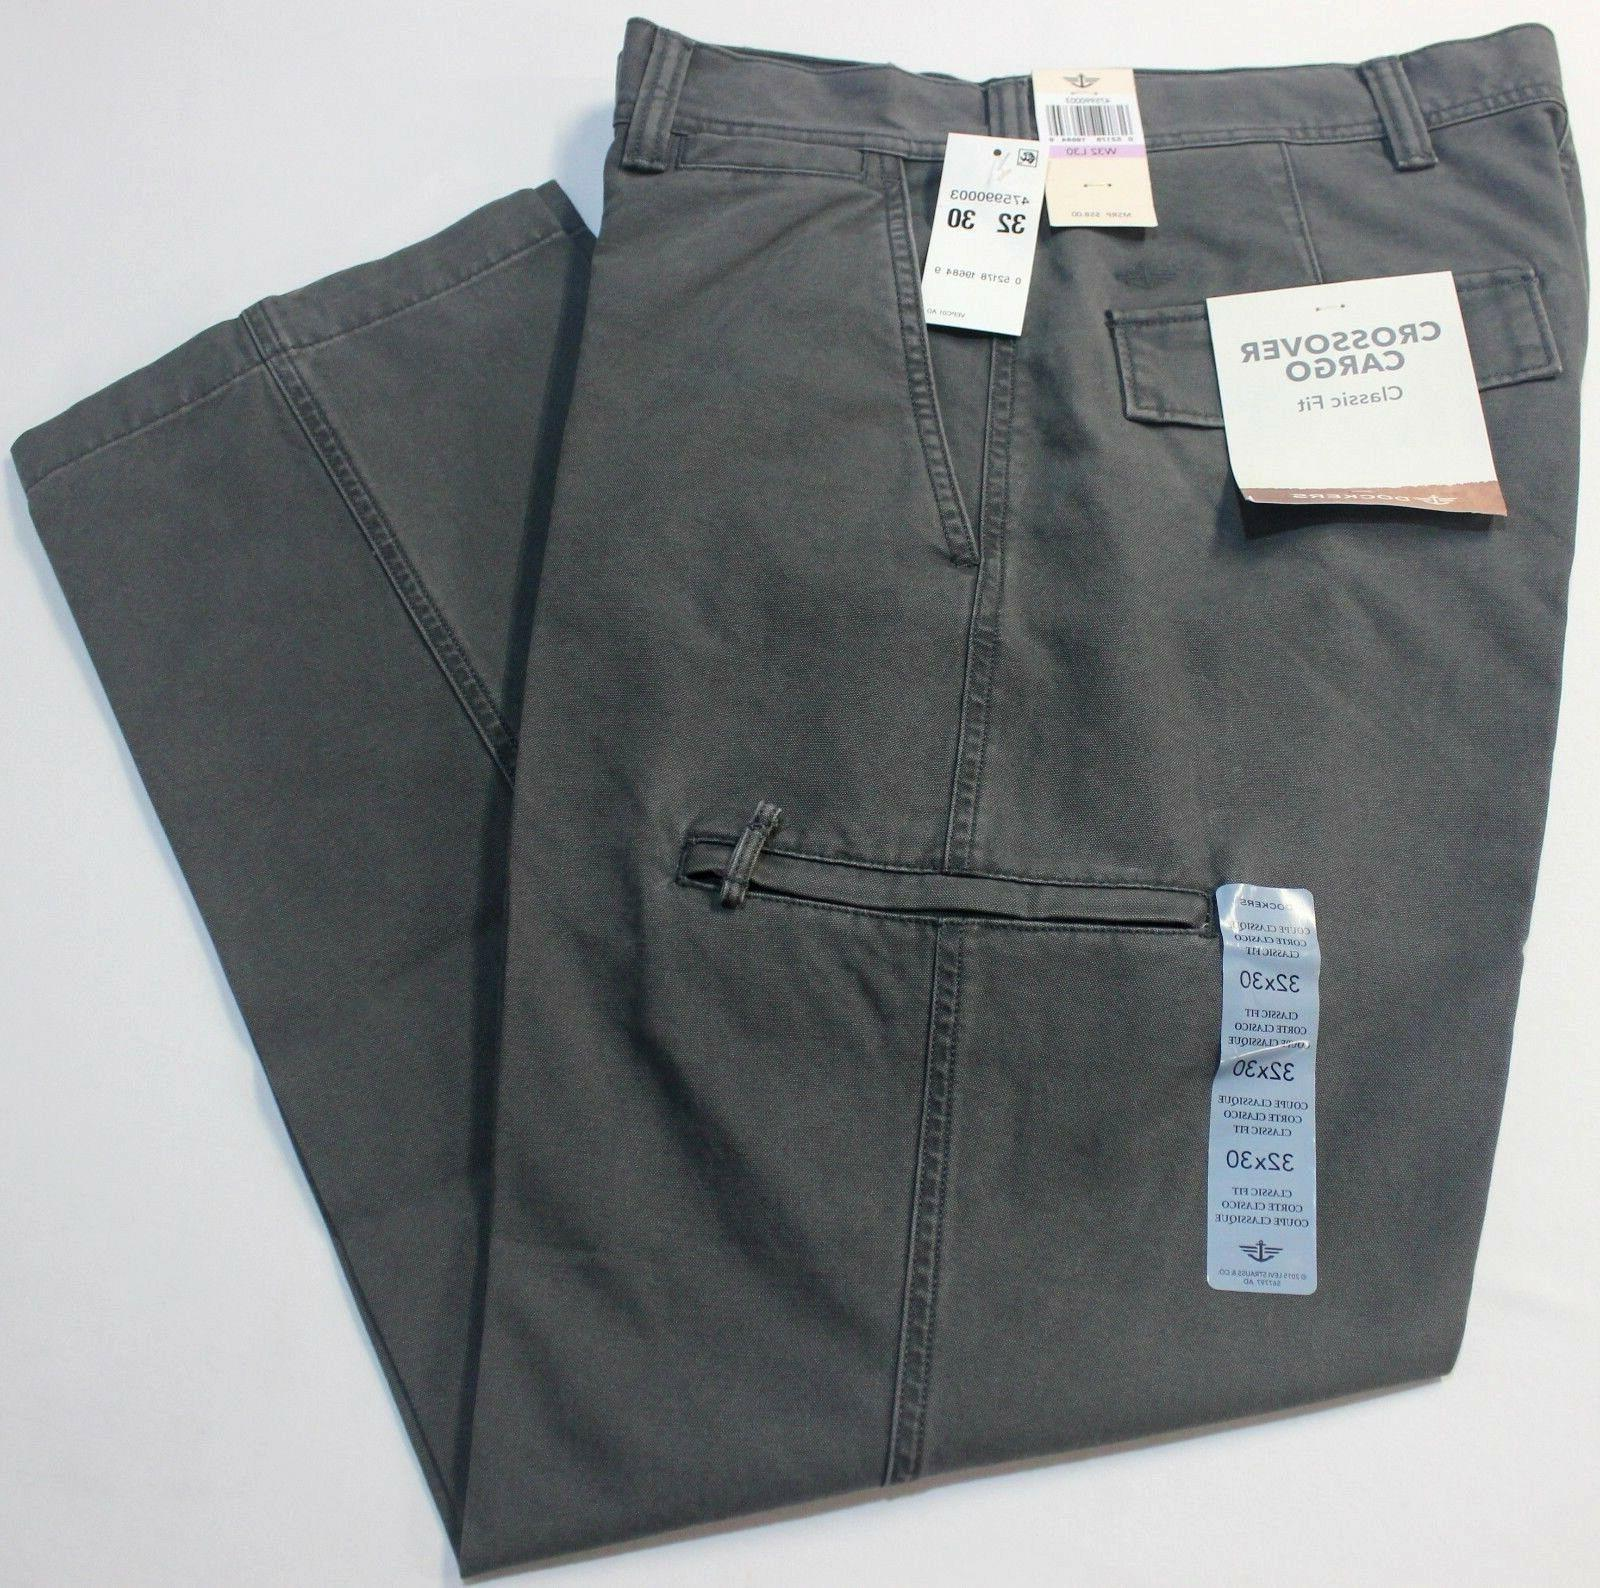 Dockers Classic Forged Flat-Front Cargo Pants